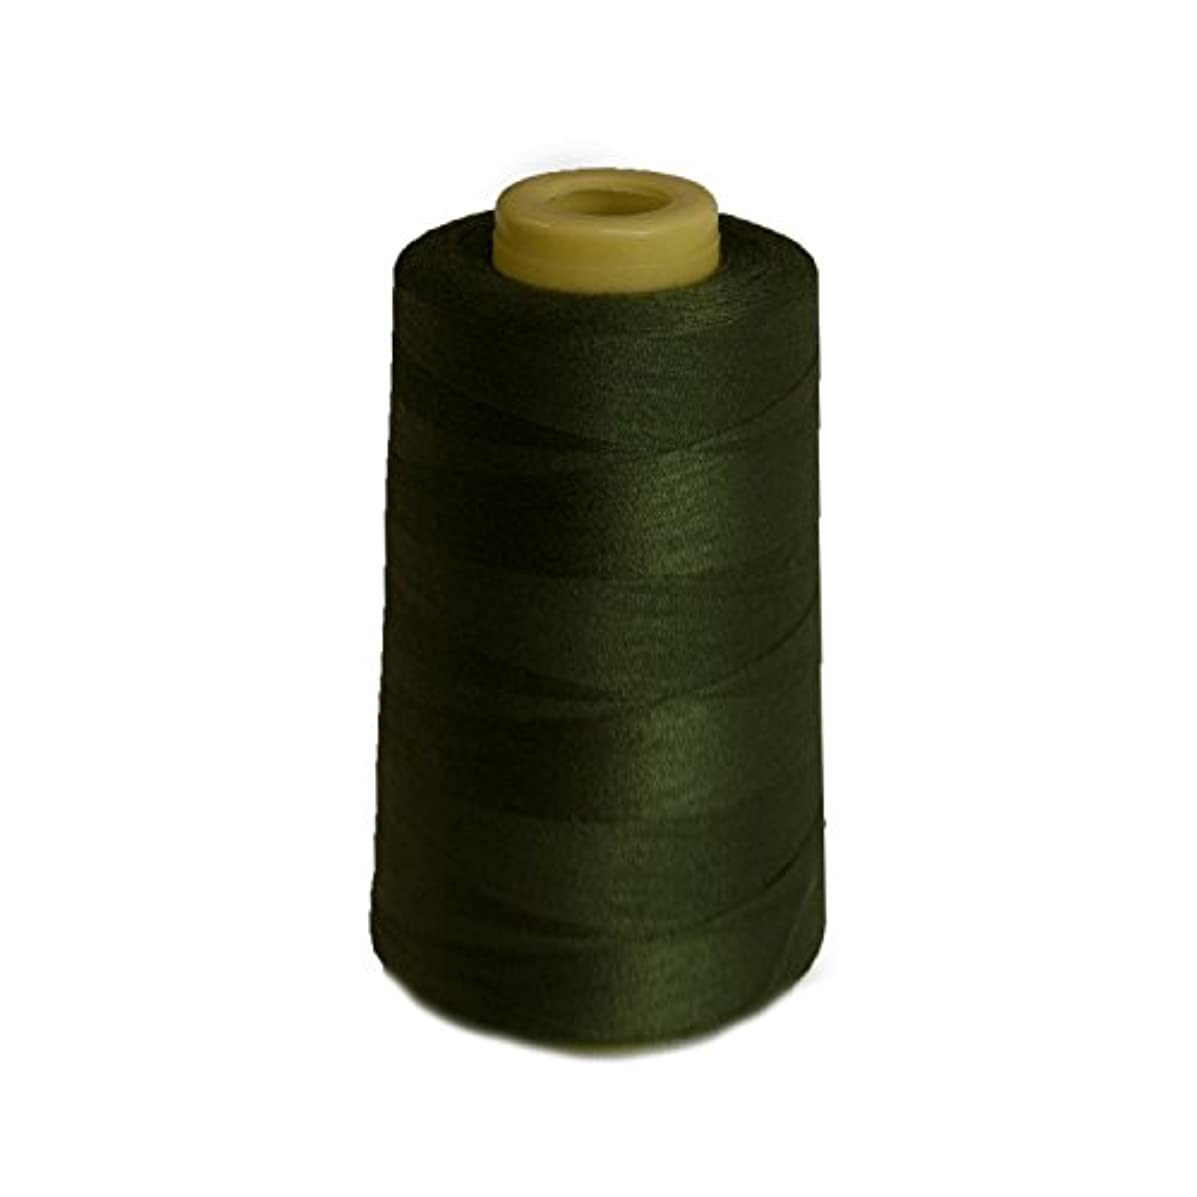 6000 Yards Olive Sewing Thread All Purpose 100% Spun Polyester Spools Overlock Cone (Upholstery, Canvas, Drapery, Beading, Quilting)